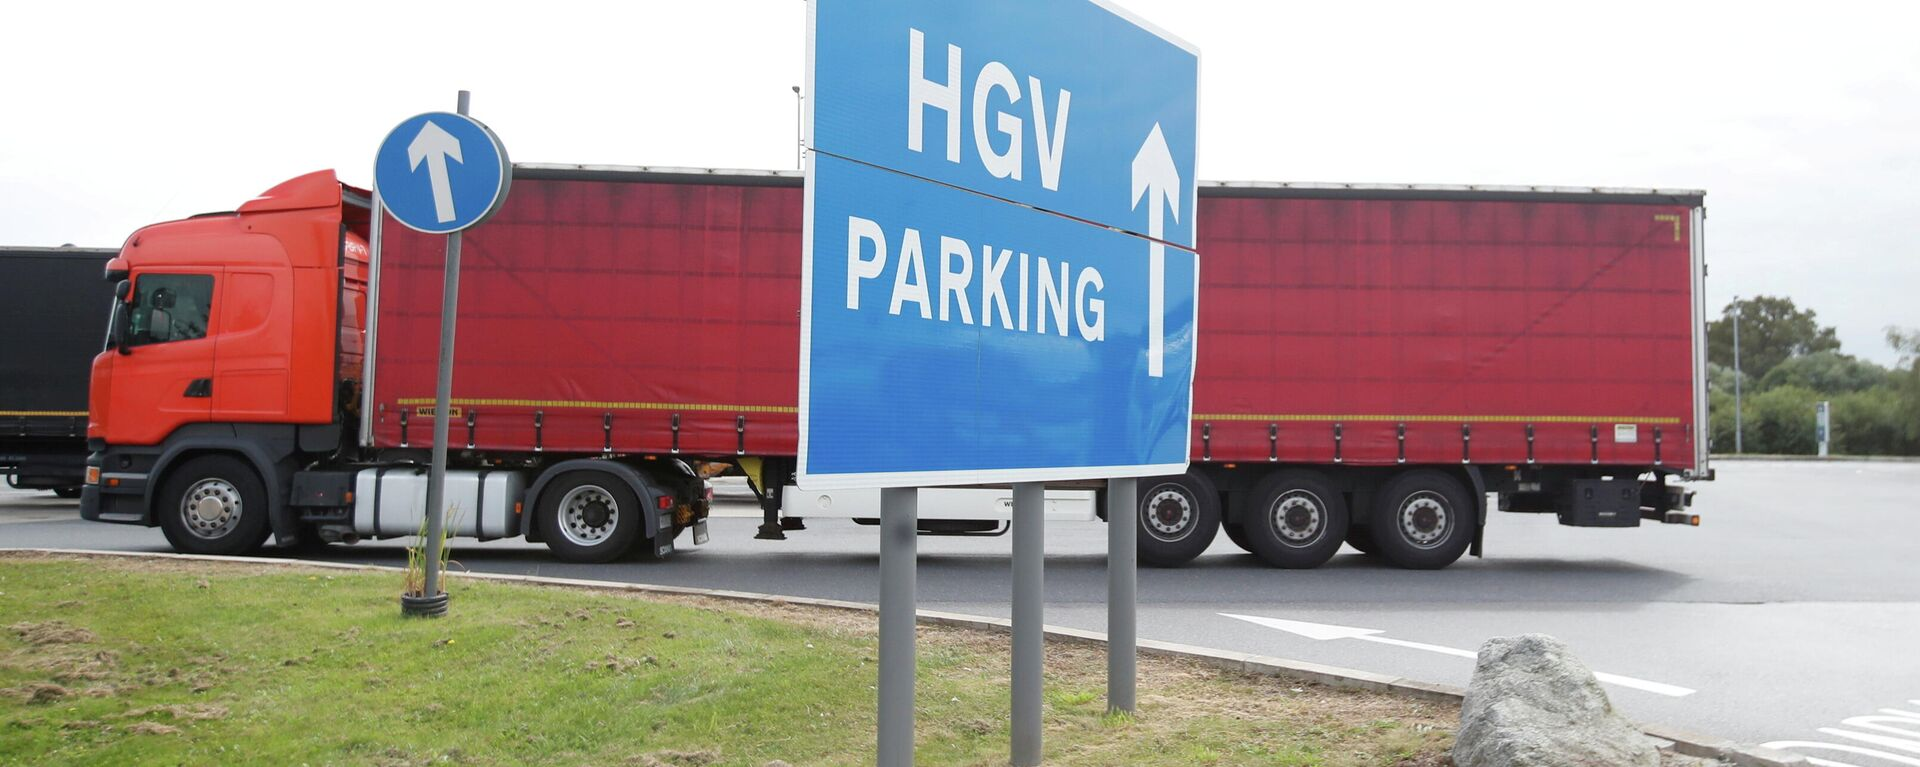 Lorries are seen at an HGV parking, at Cobham services on the M25 motorway, Cobham, Britain, August 31, 2021 - Sputnik International, 1920, 25.09.2021